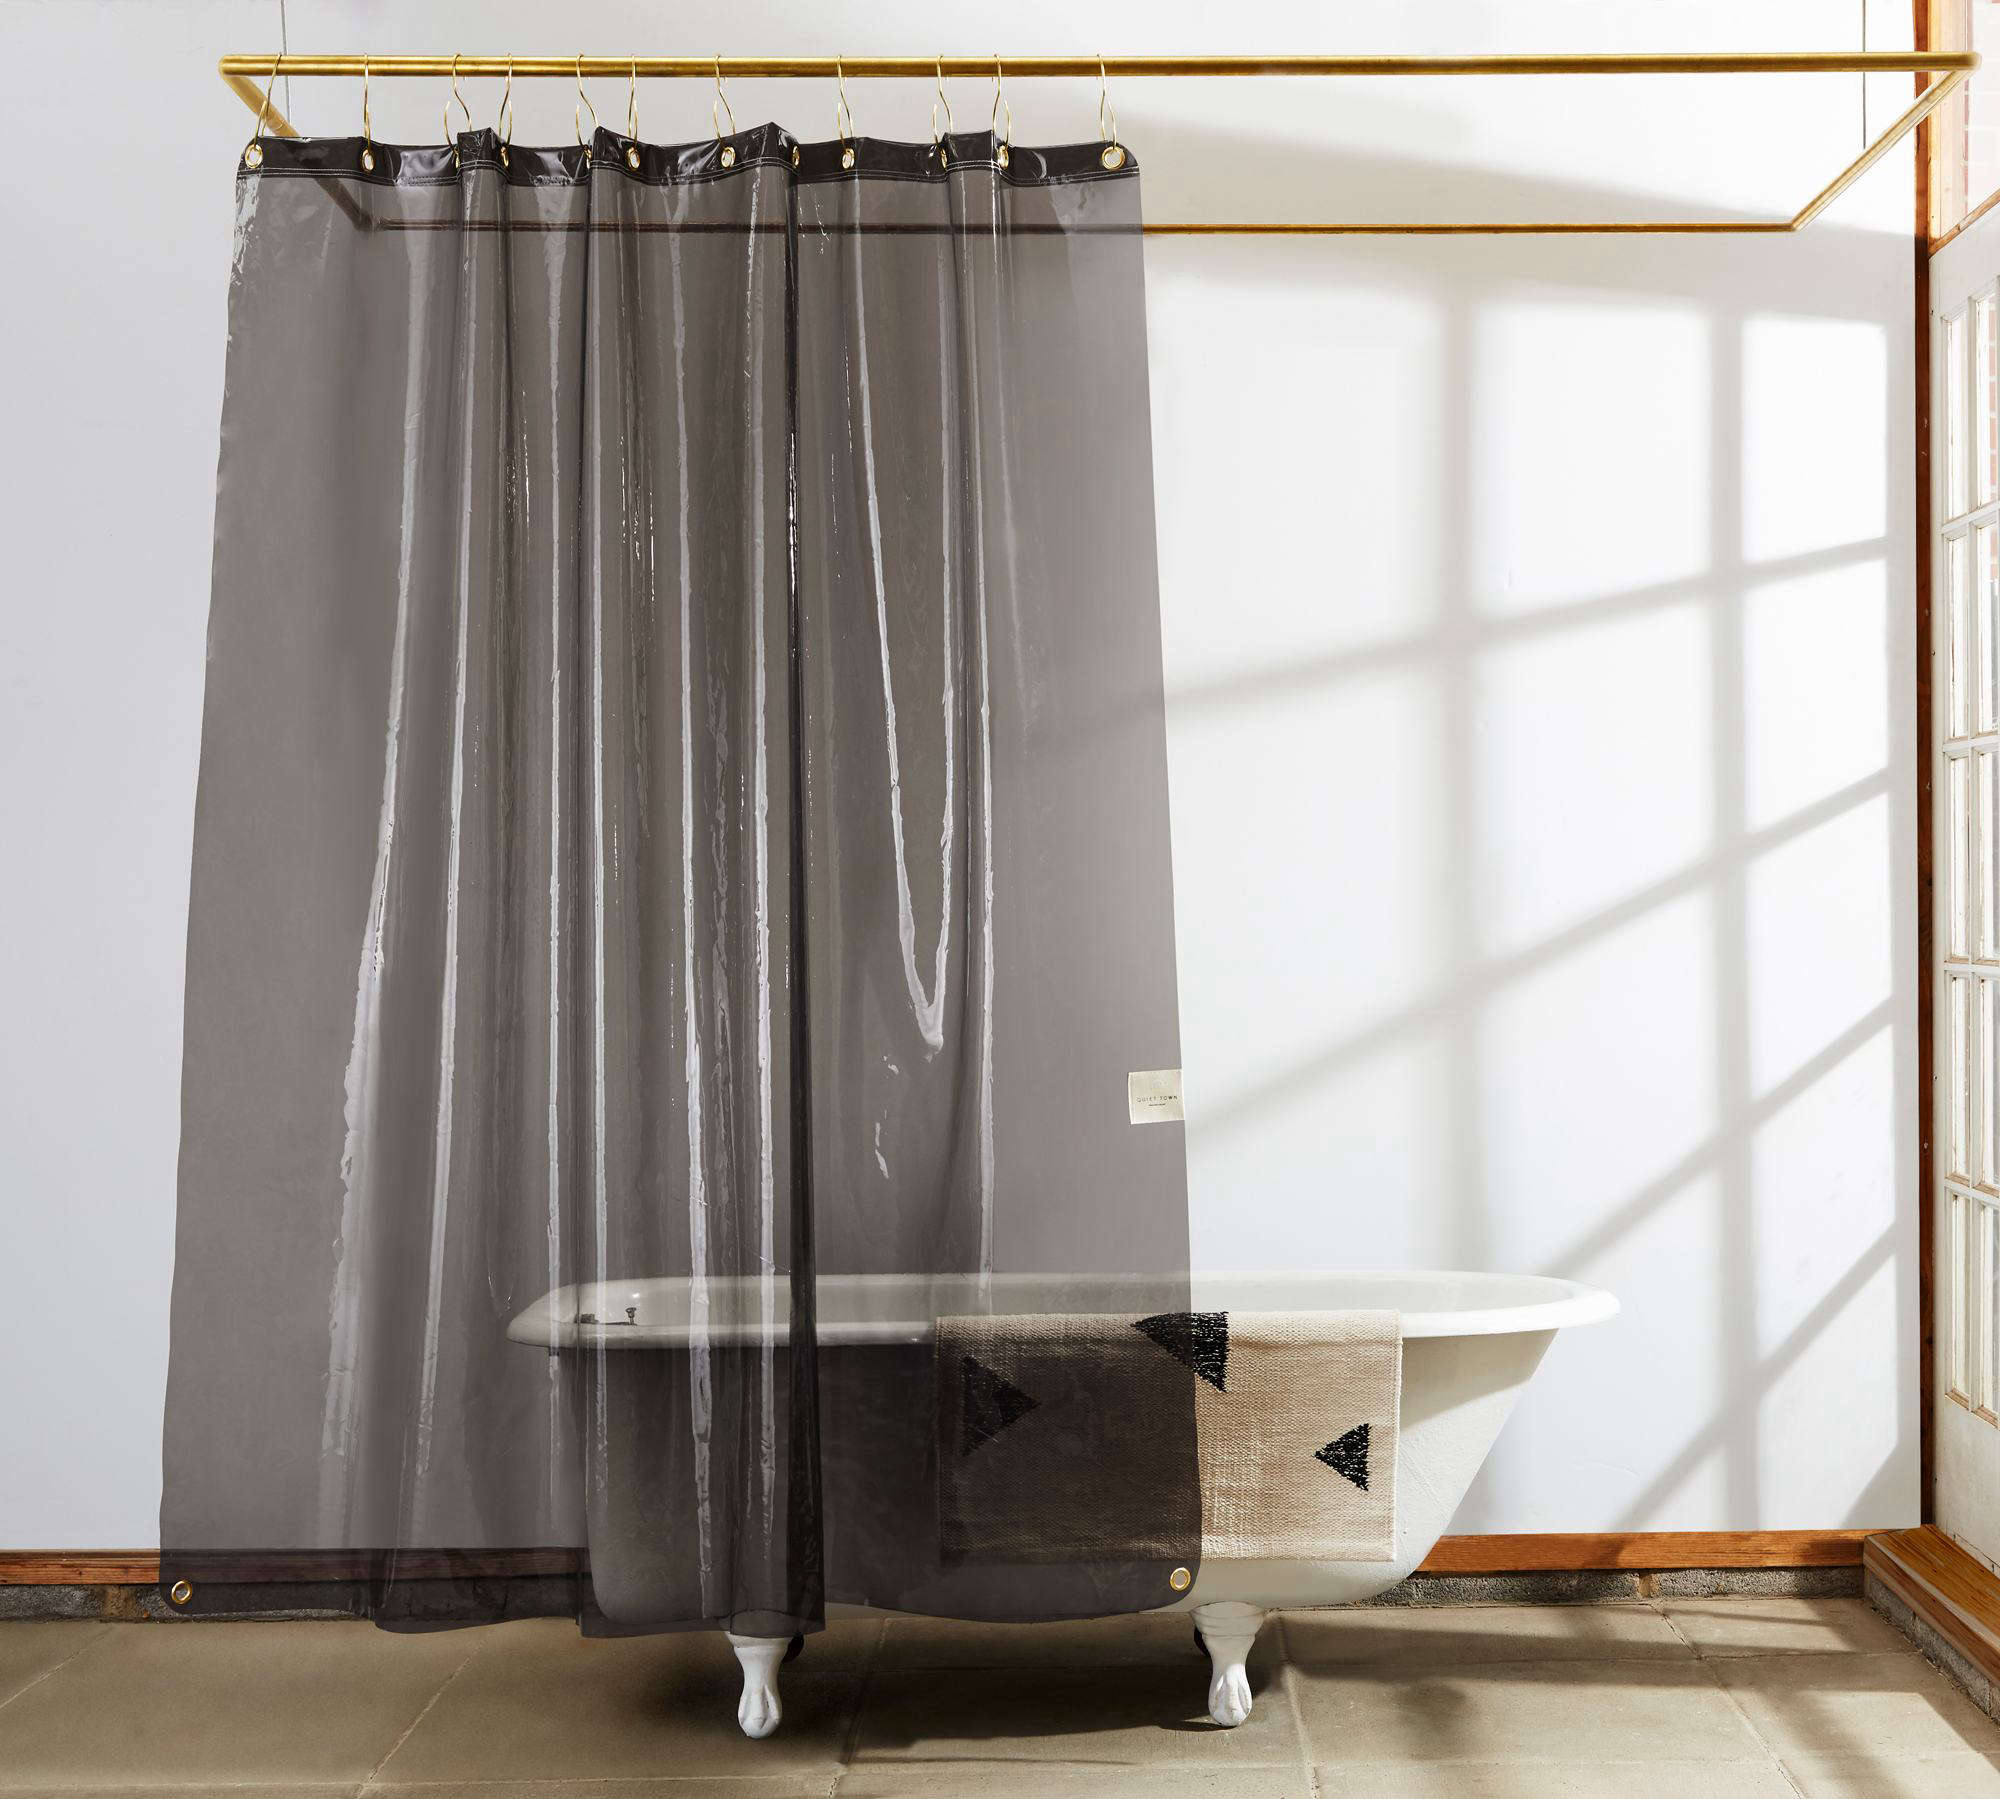 Spectacular The Sun Shower Night Ride Shower Curtains